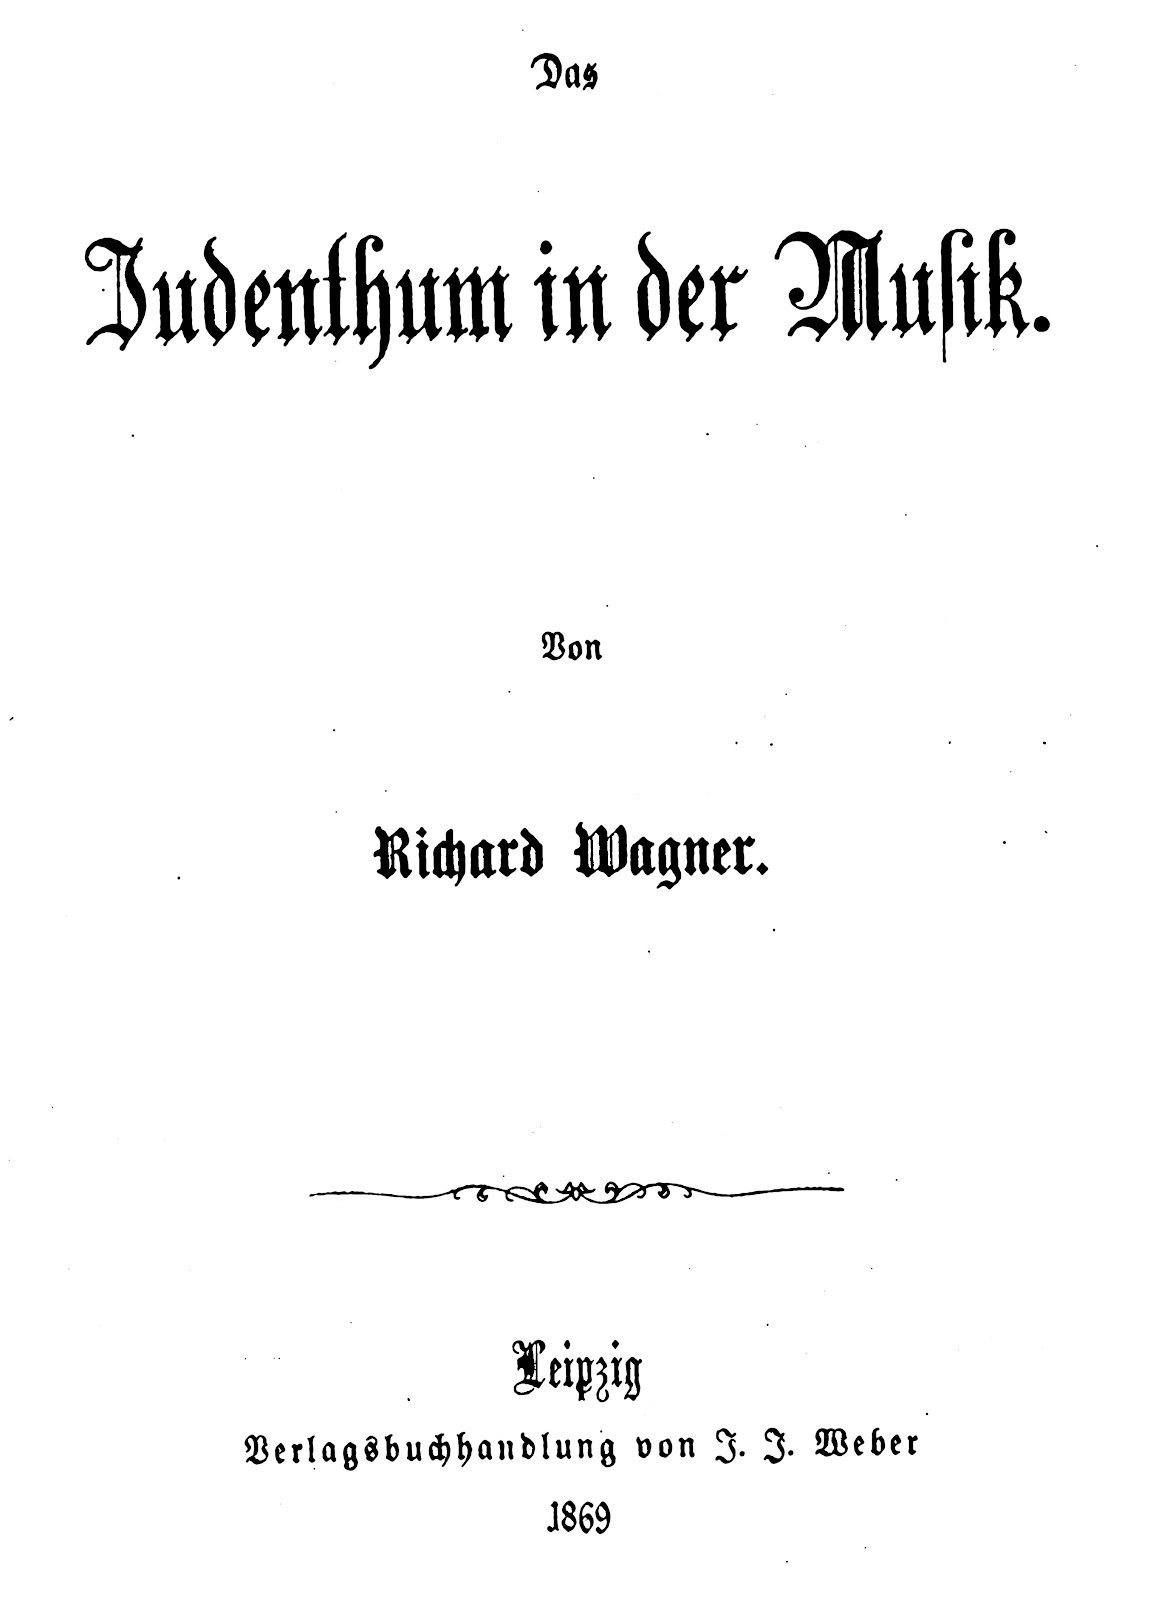 thus will we be united and out difference think classical the cover of the 1869 publication of das judenthum in der musik